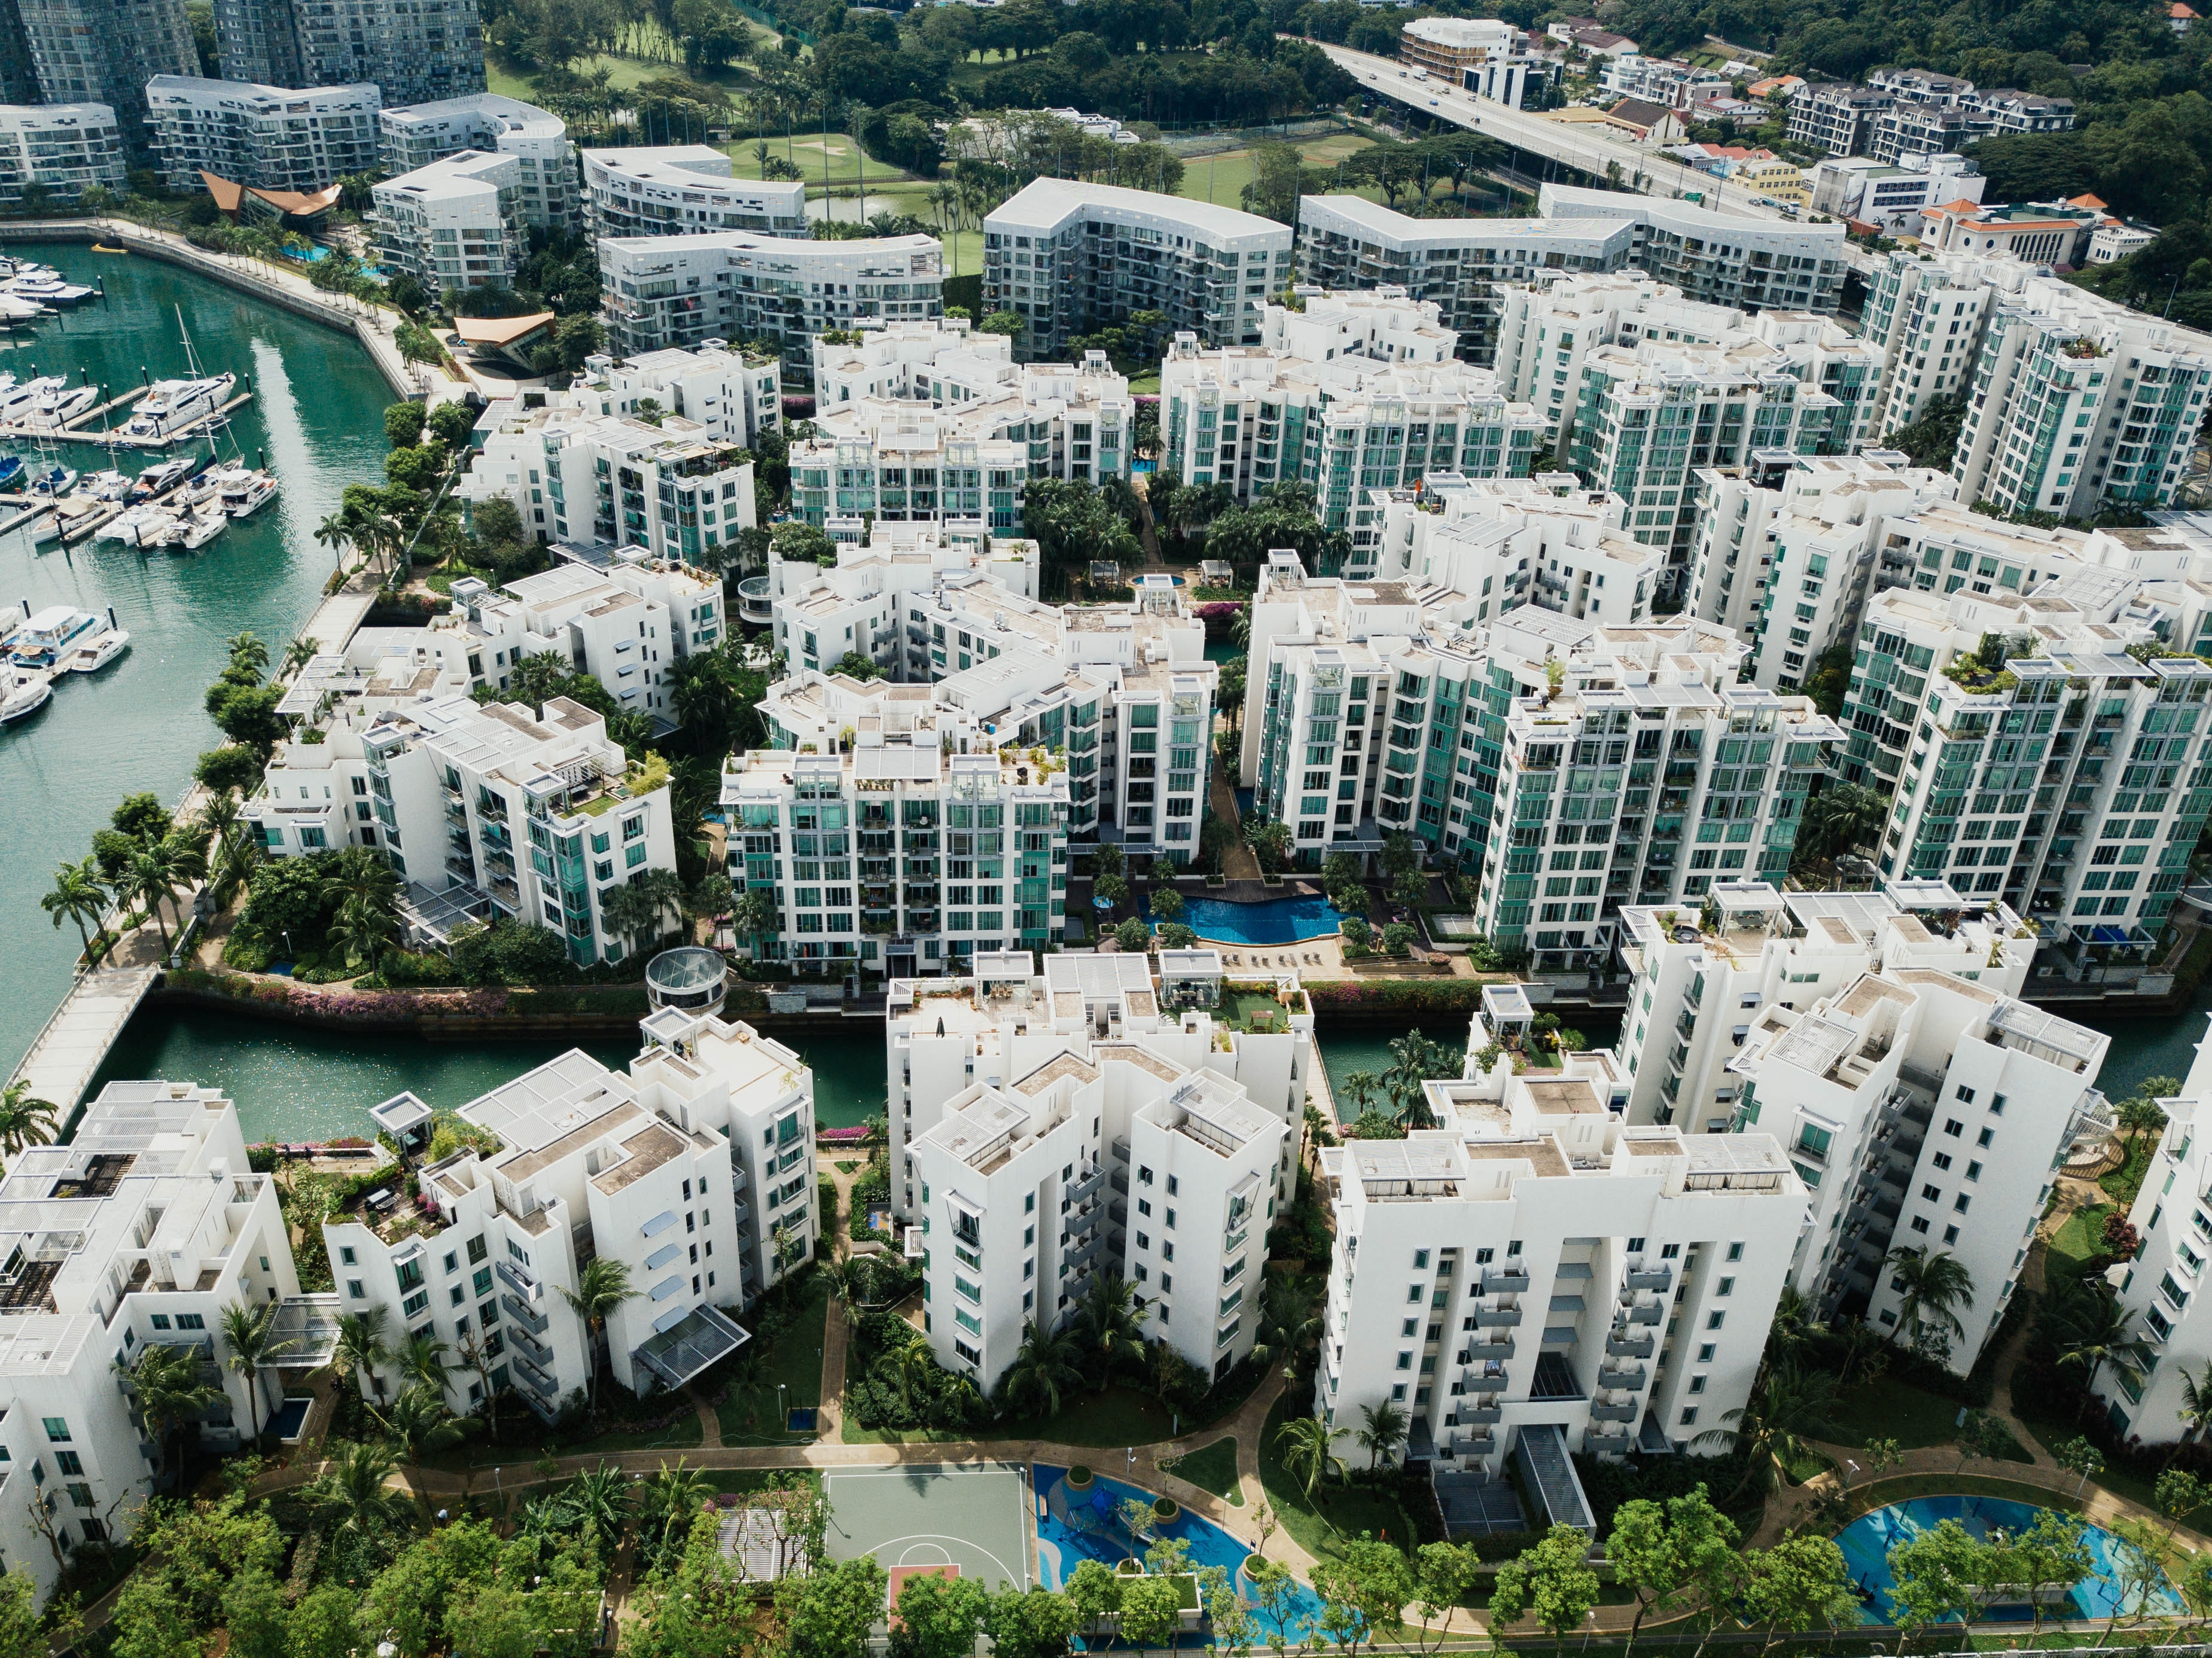 aerial photography of white concrete buildings beside body of water at daytime